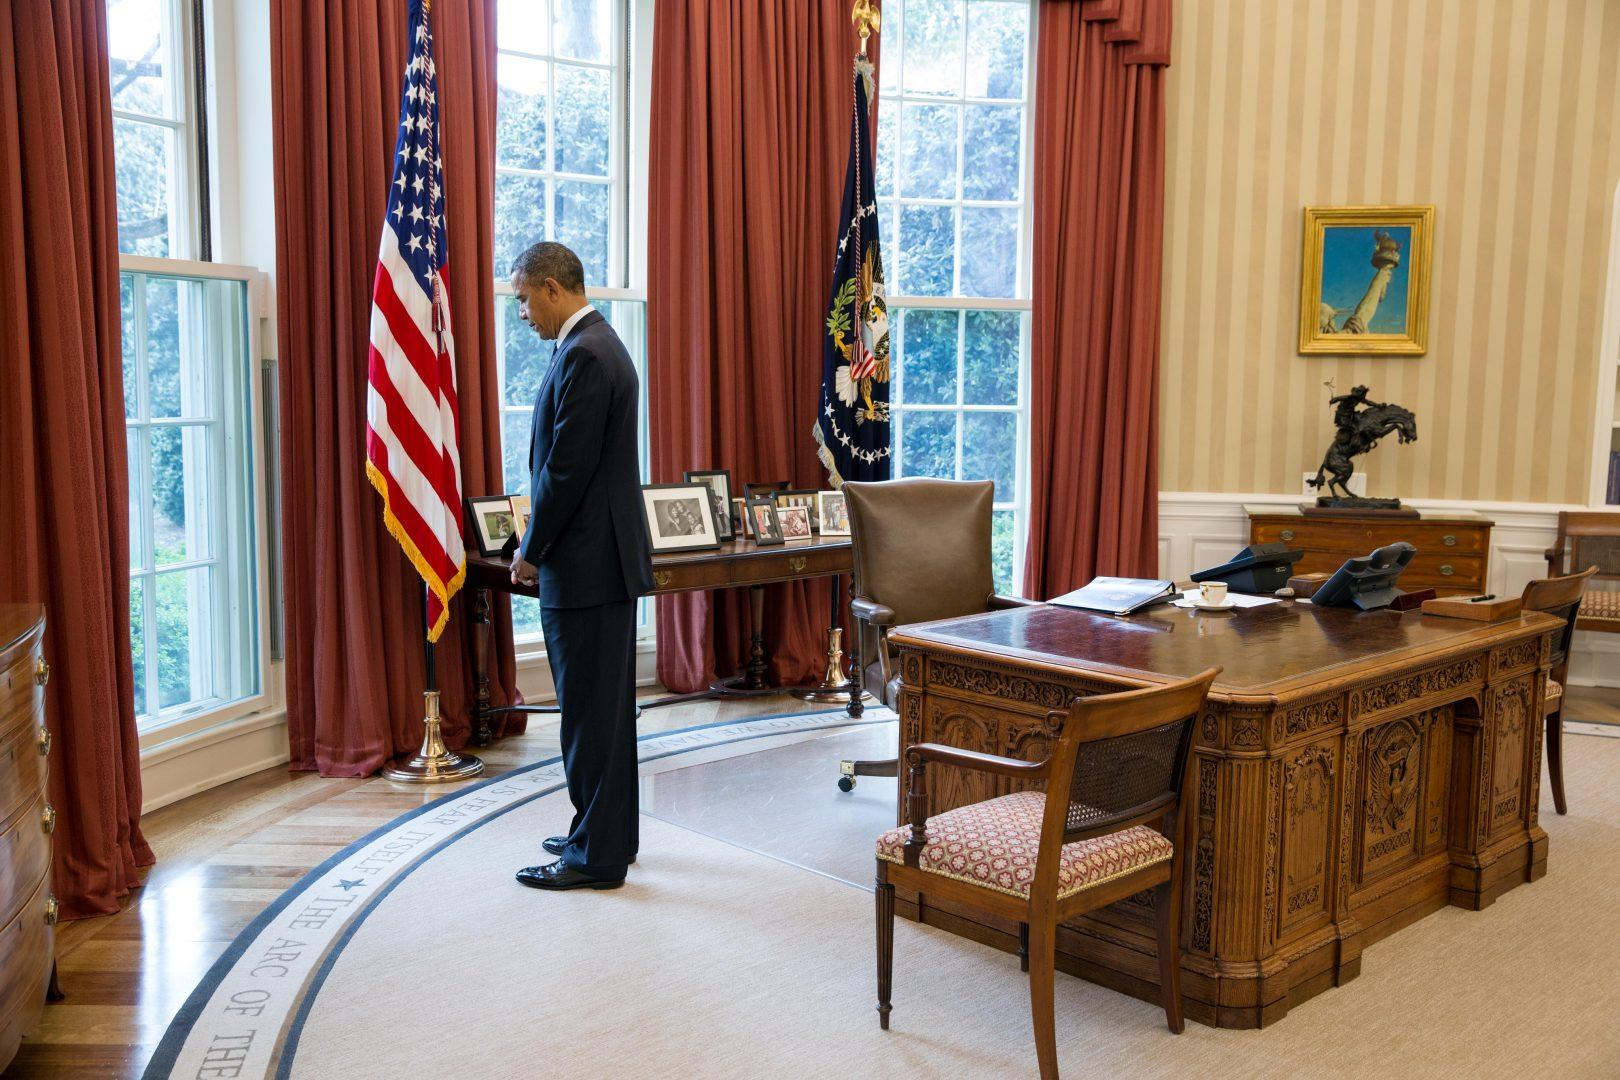 Pete Souza/Official White House Photo/MCT